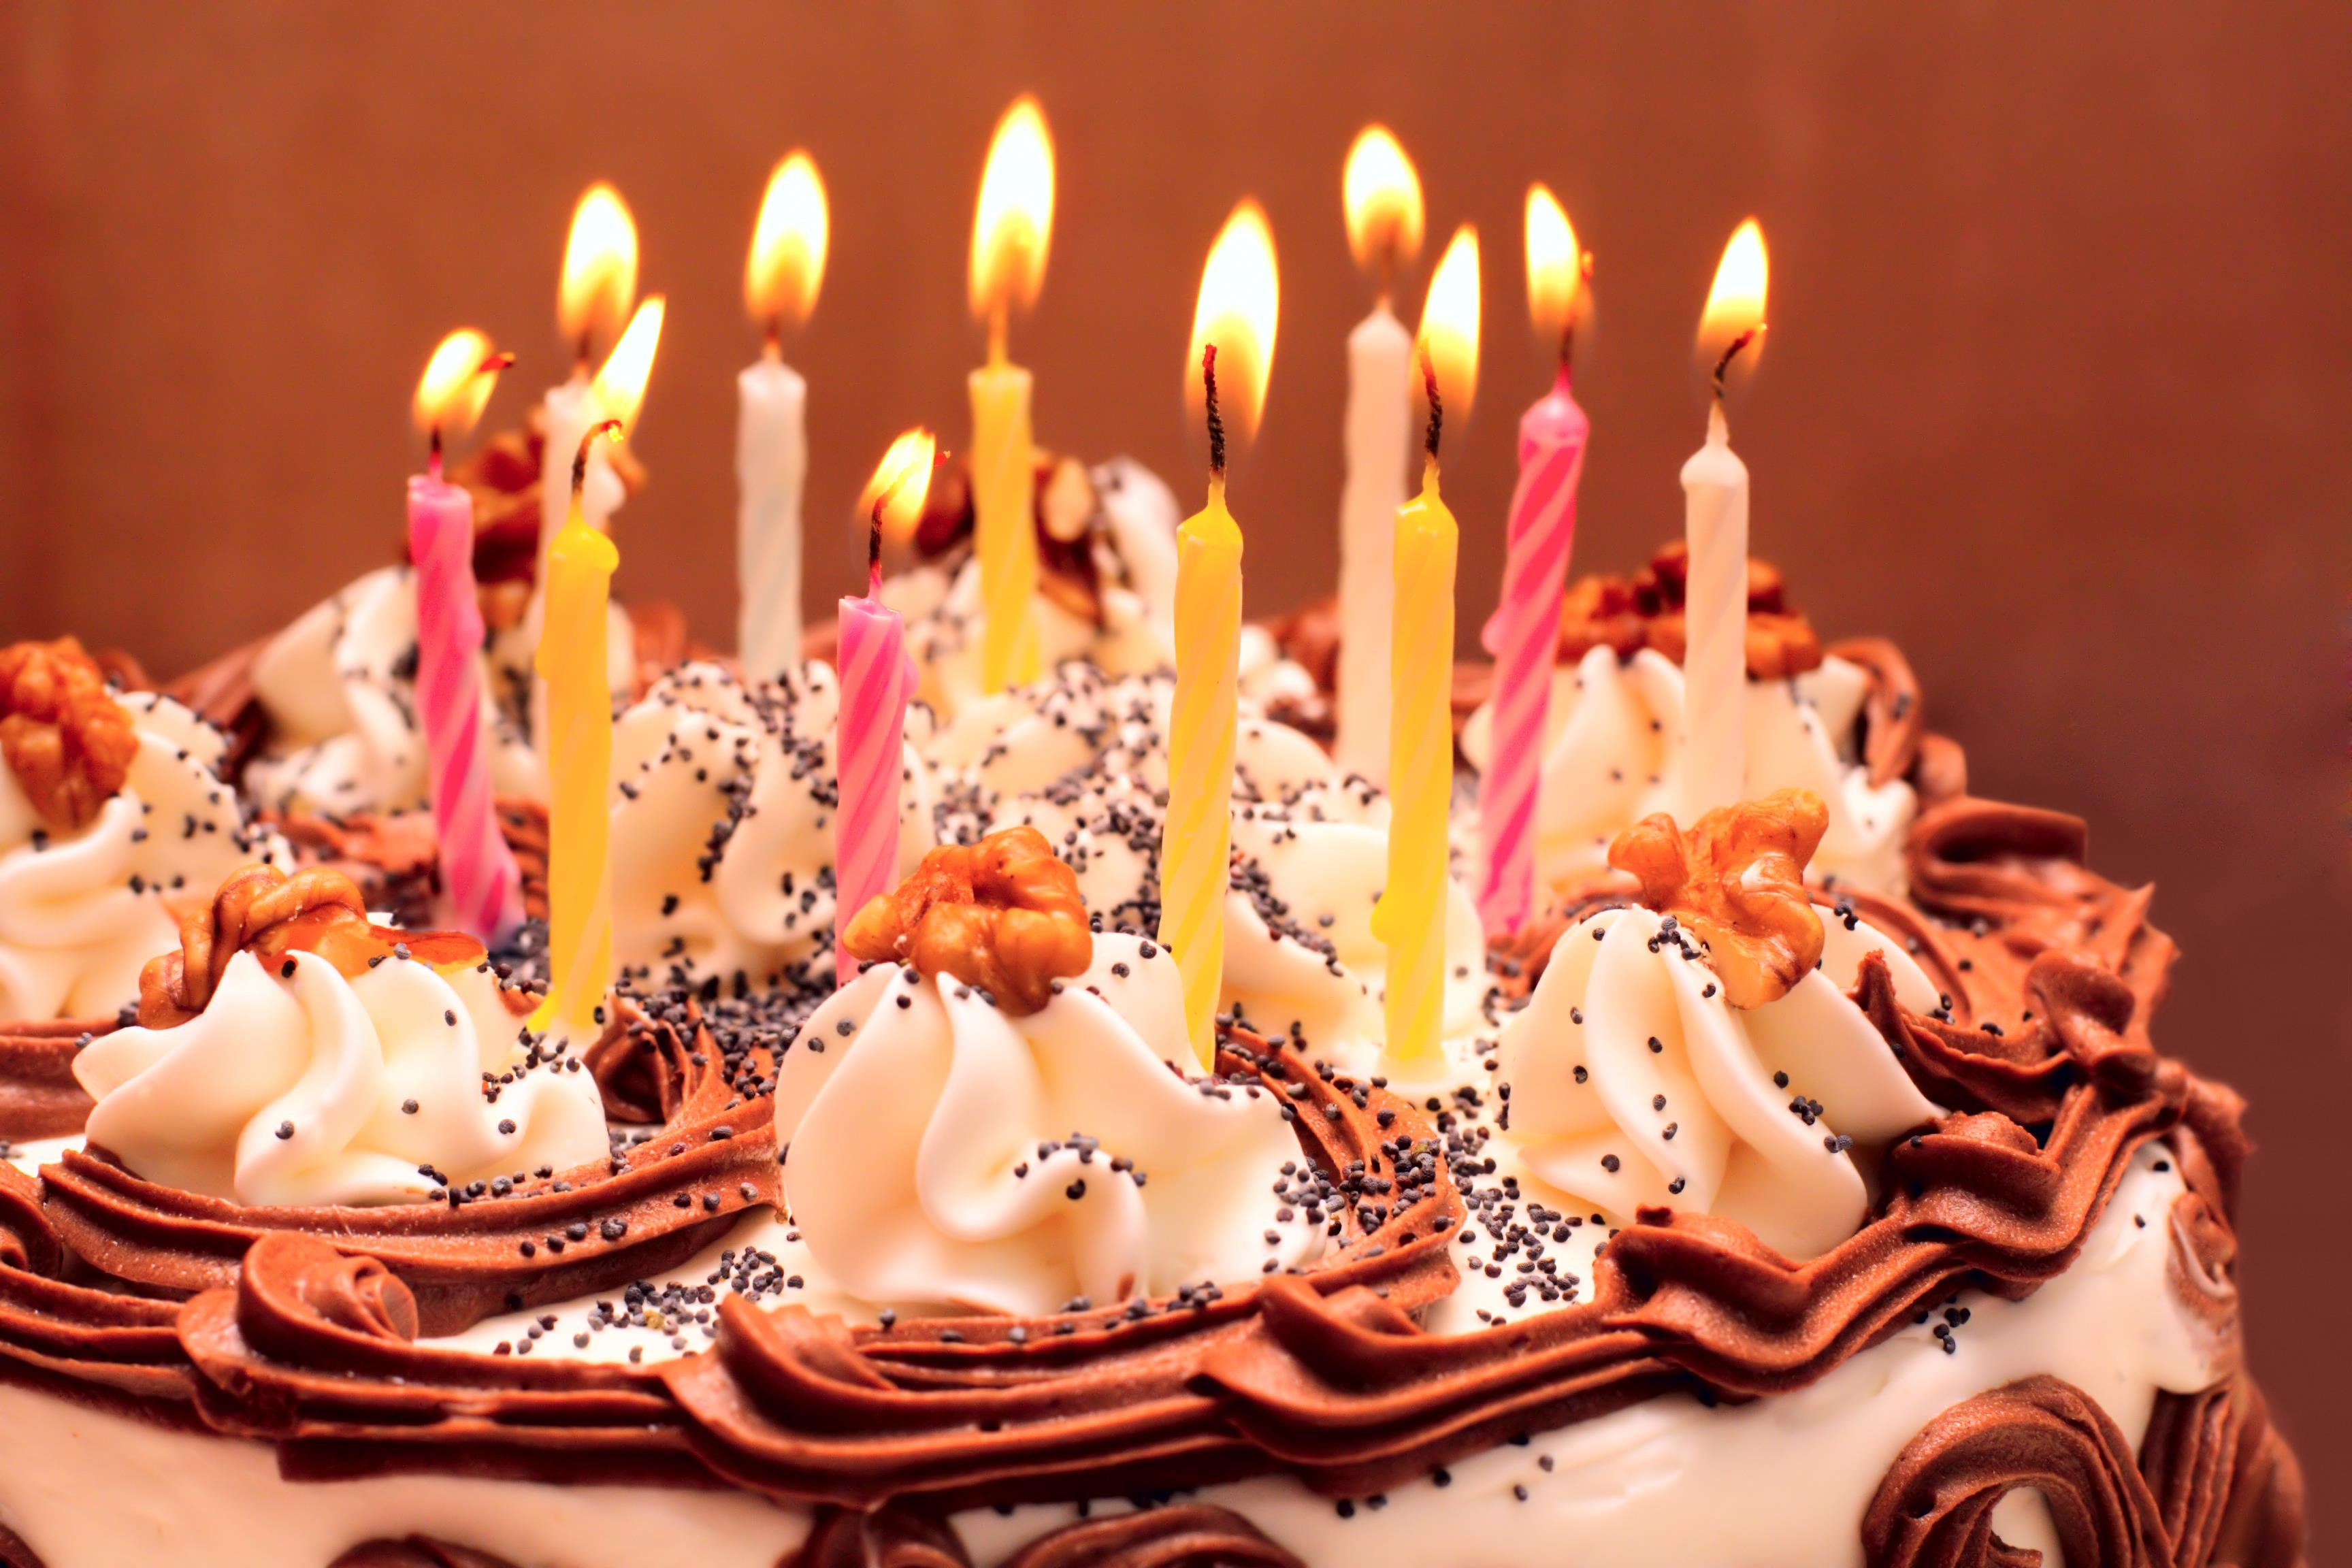 picture of birthday cake and candles ; birthday-cake